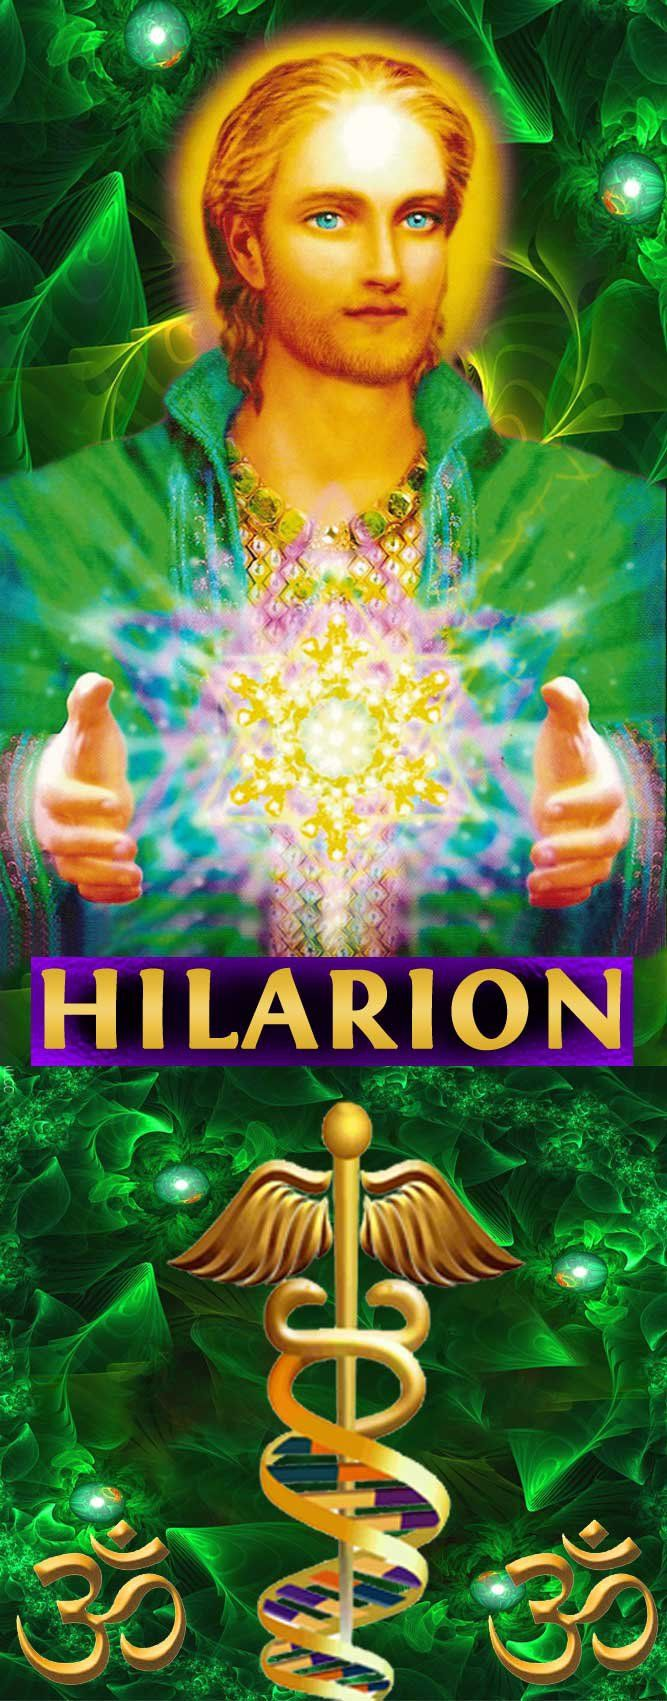 Ascended Master Hilarion, Hilarion is Chohan of the Fifth Ray, the green ray and represents Healing, Science, Vision and Prosperity, may all my friends encounter this loving Master and receive Healing and Prosperity.